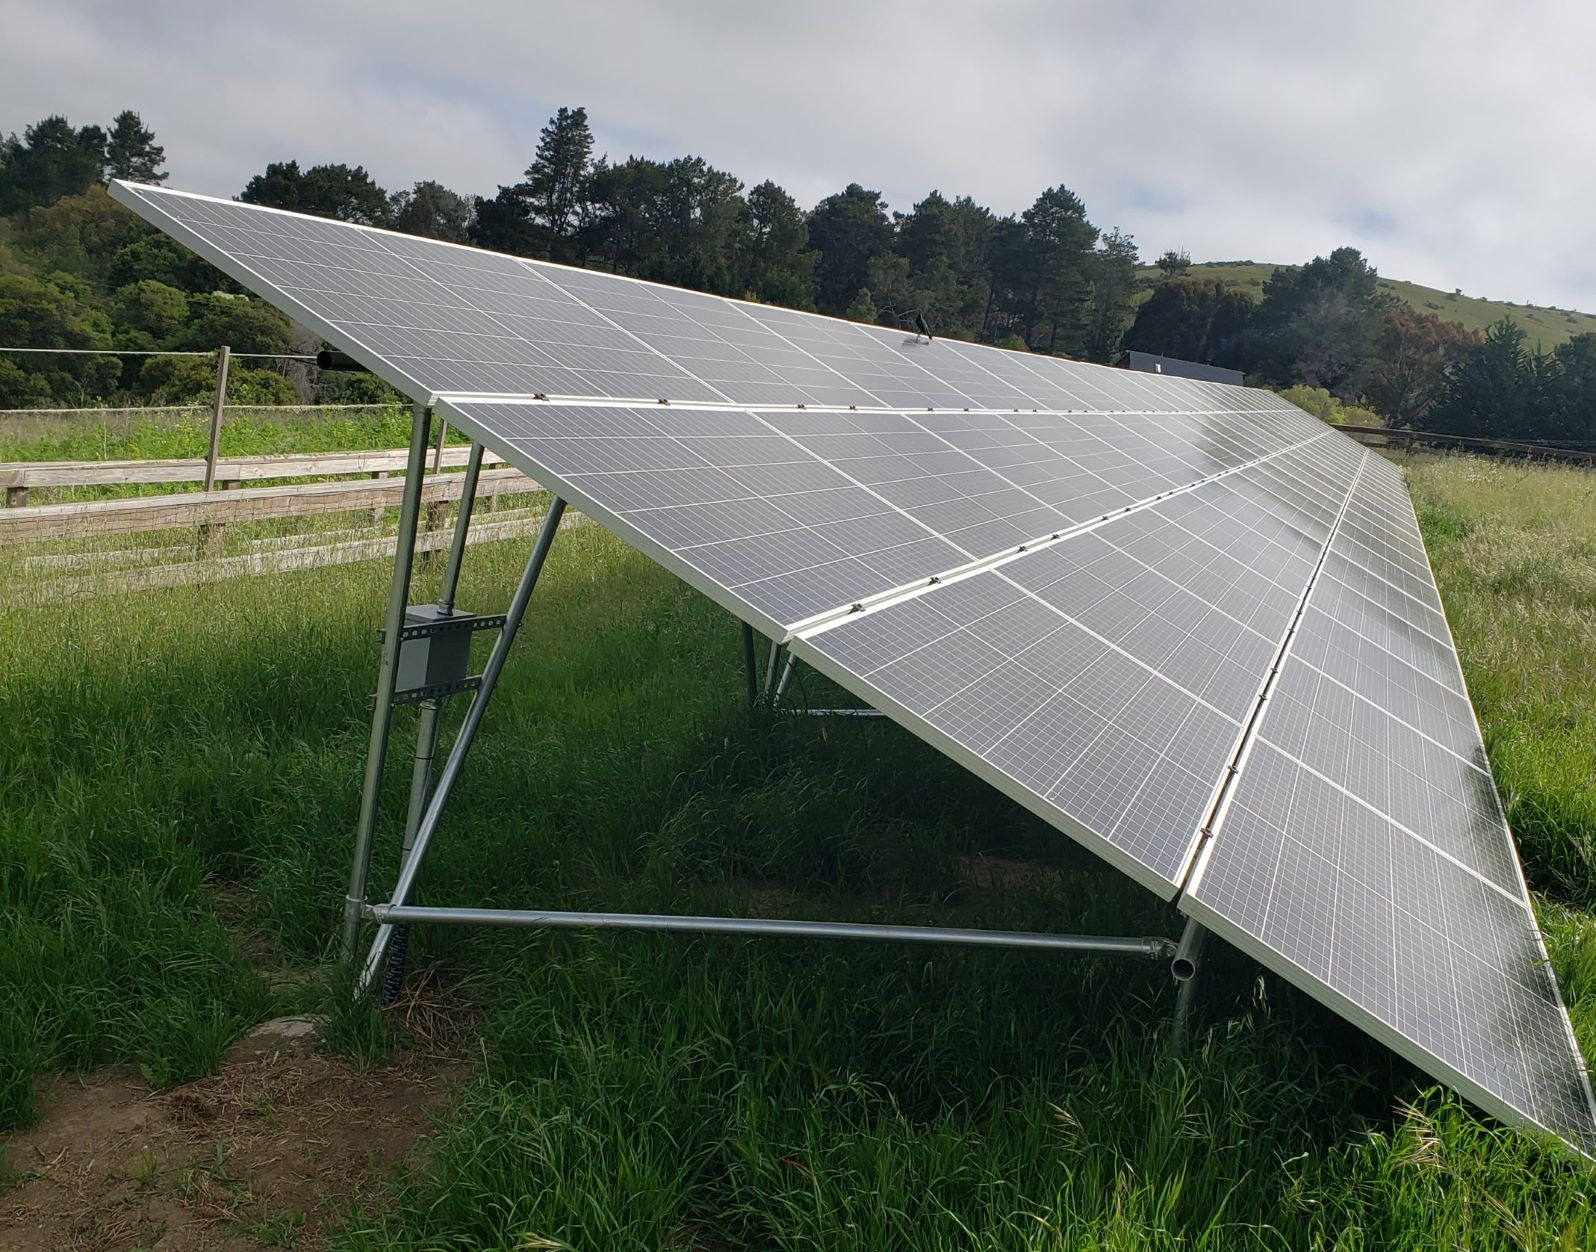 SolarCraft Completes Solar Power Installation at Heidrun Meadery - West Marin Sparkling Mead Winery Harvests the Sun